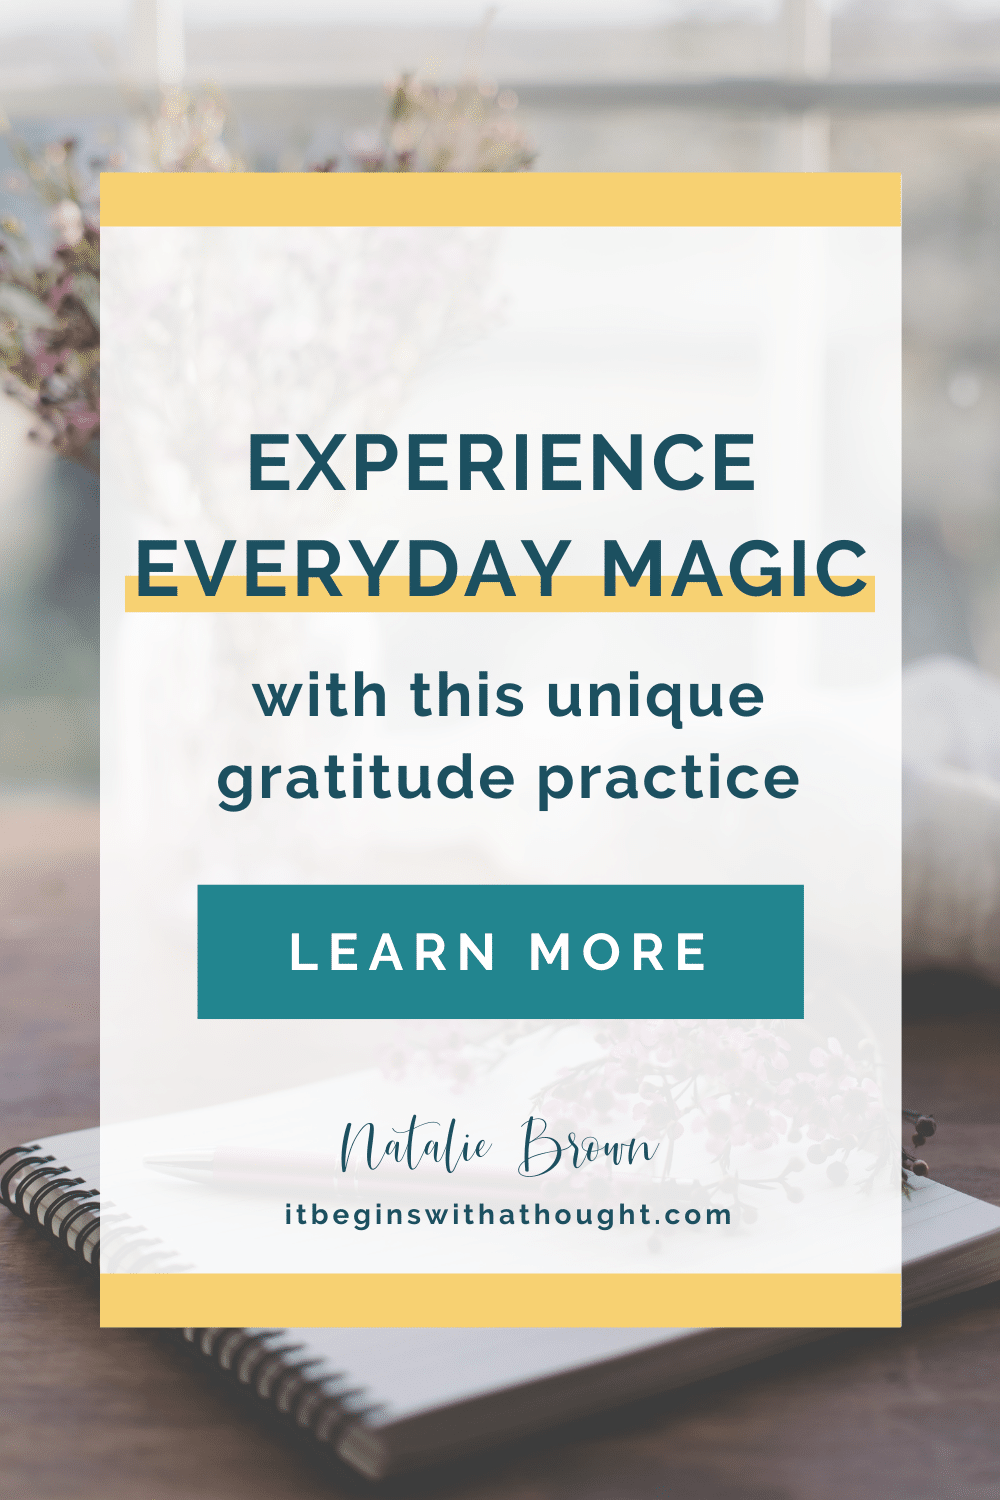 Learn about toxic gratitude and how to experience everyday magic with my unique gratitude practice instead.